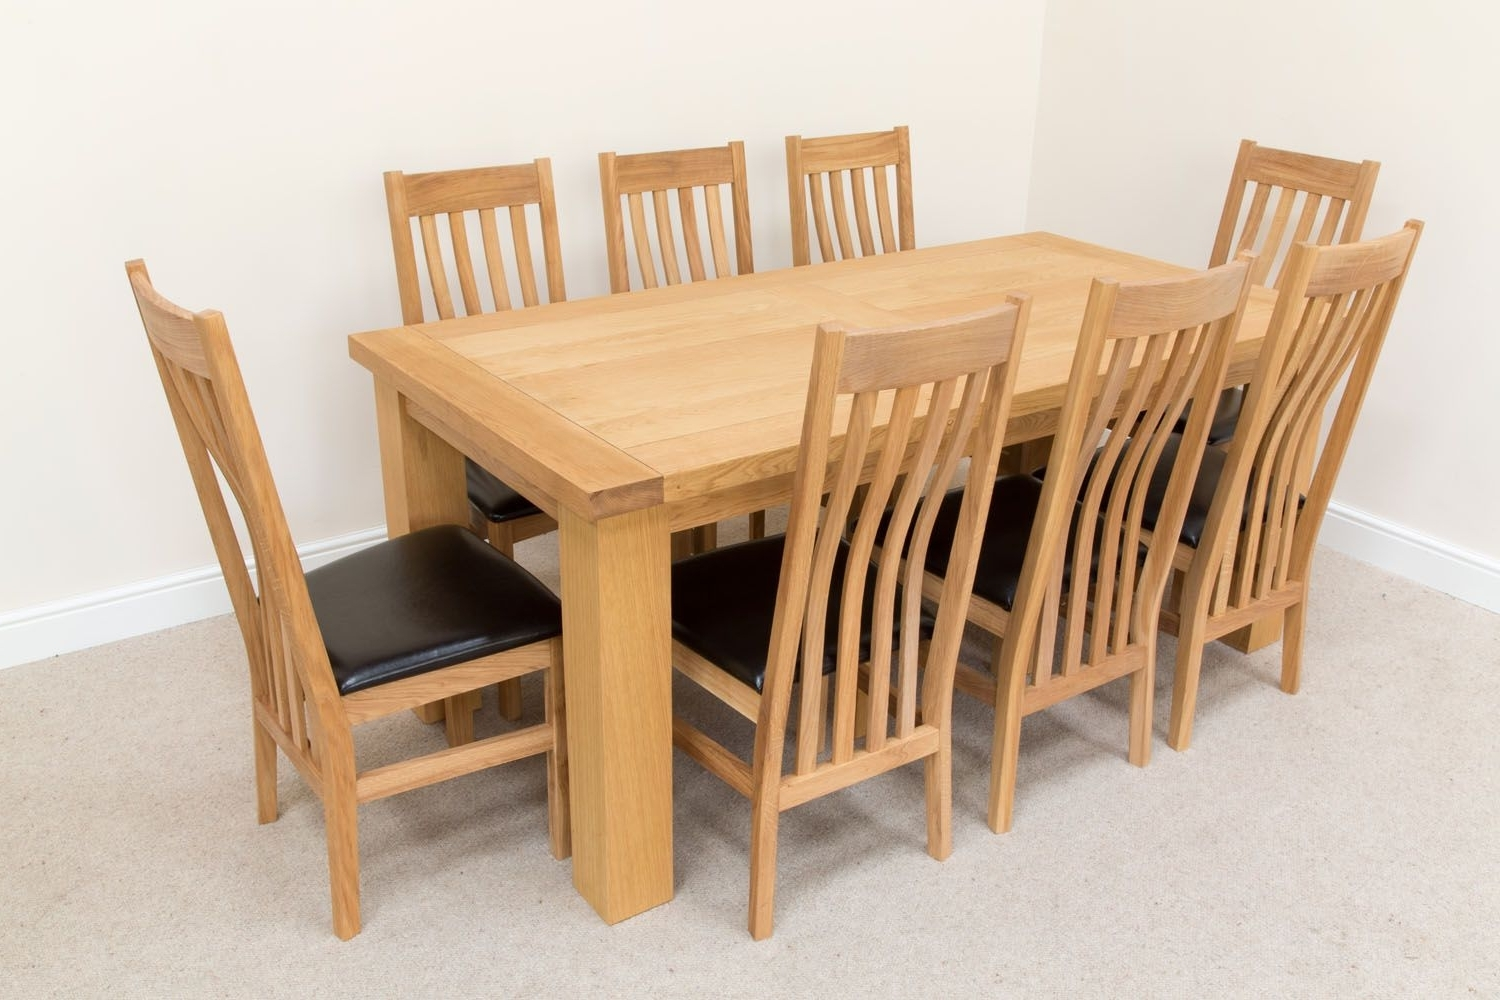 2017 Riga Oak Table 8 Seater Winchester Brown Chair Dining Set Intended For Dining Tables For  (View 4 of 25)